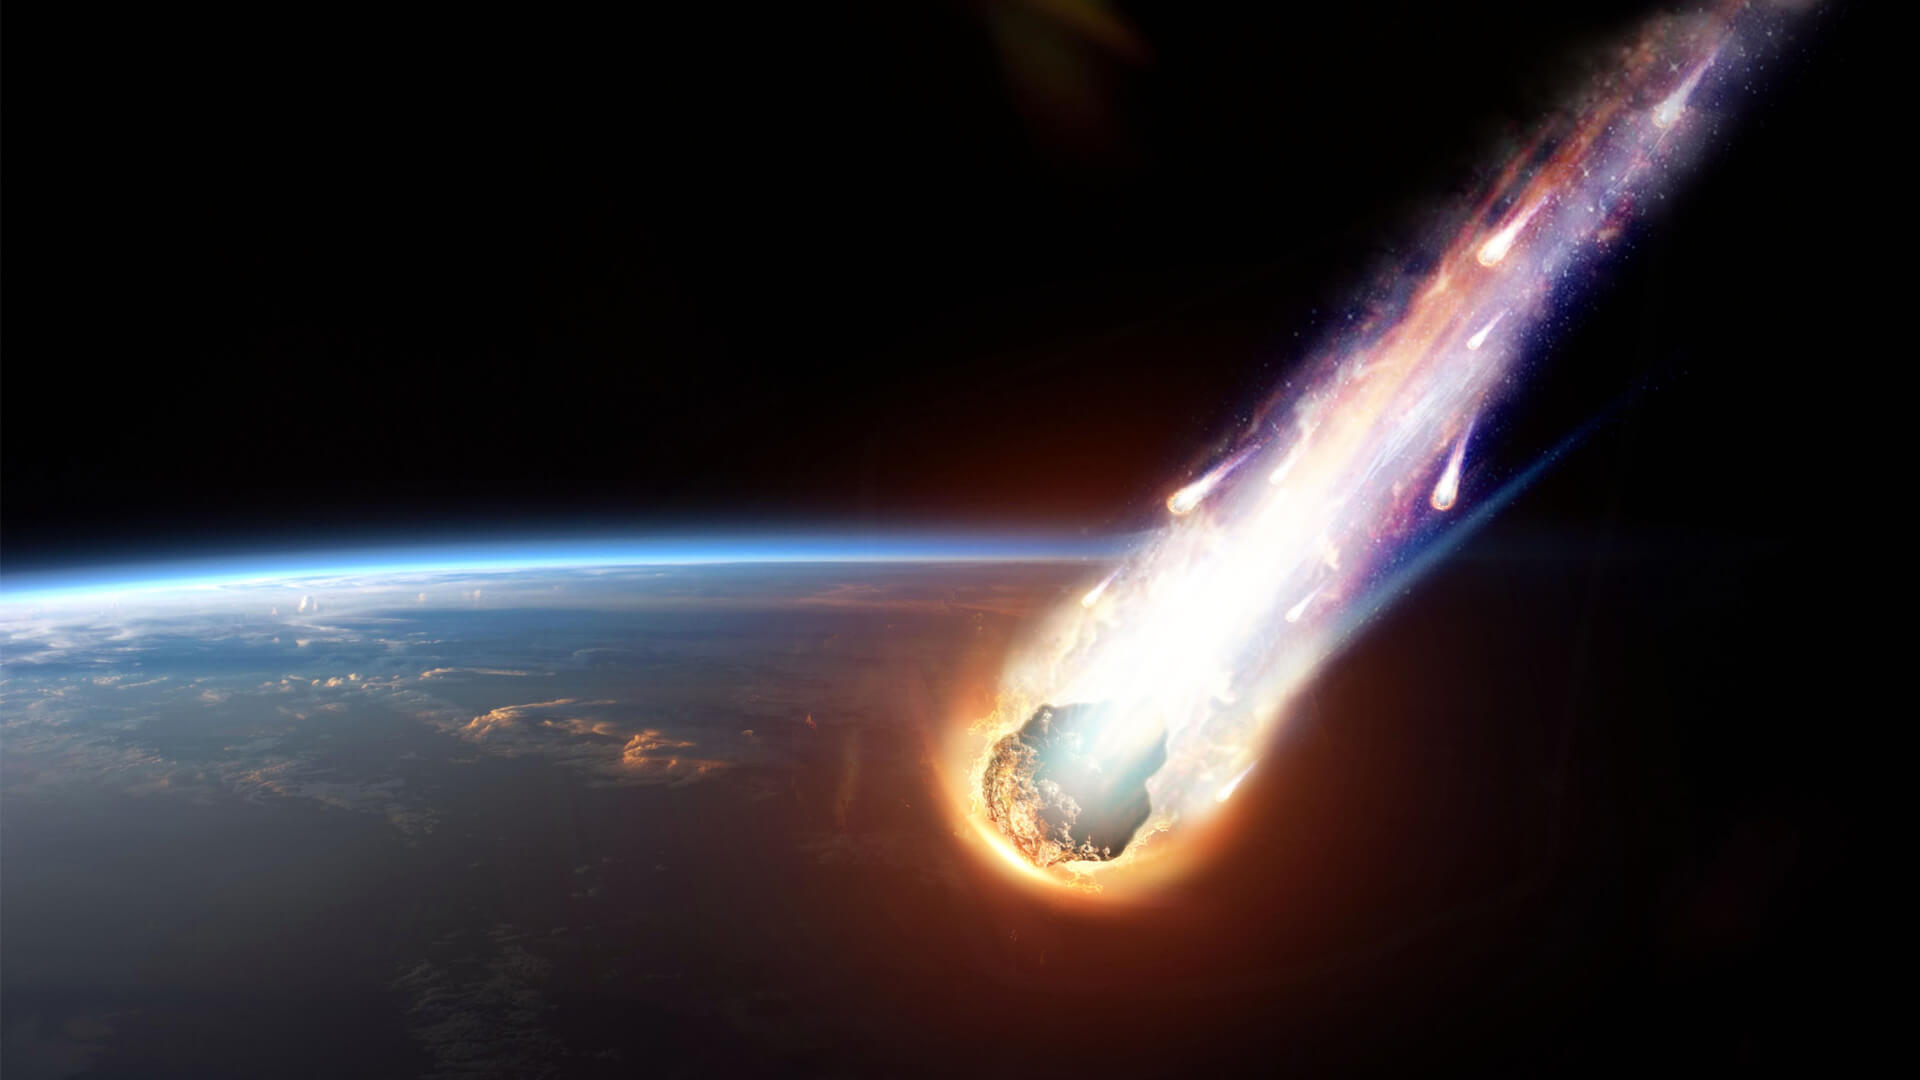 Could a meteor cause the fire?